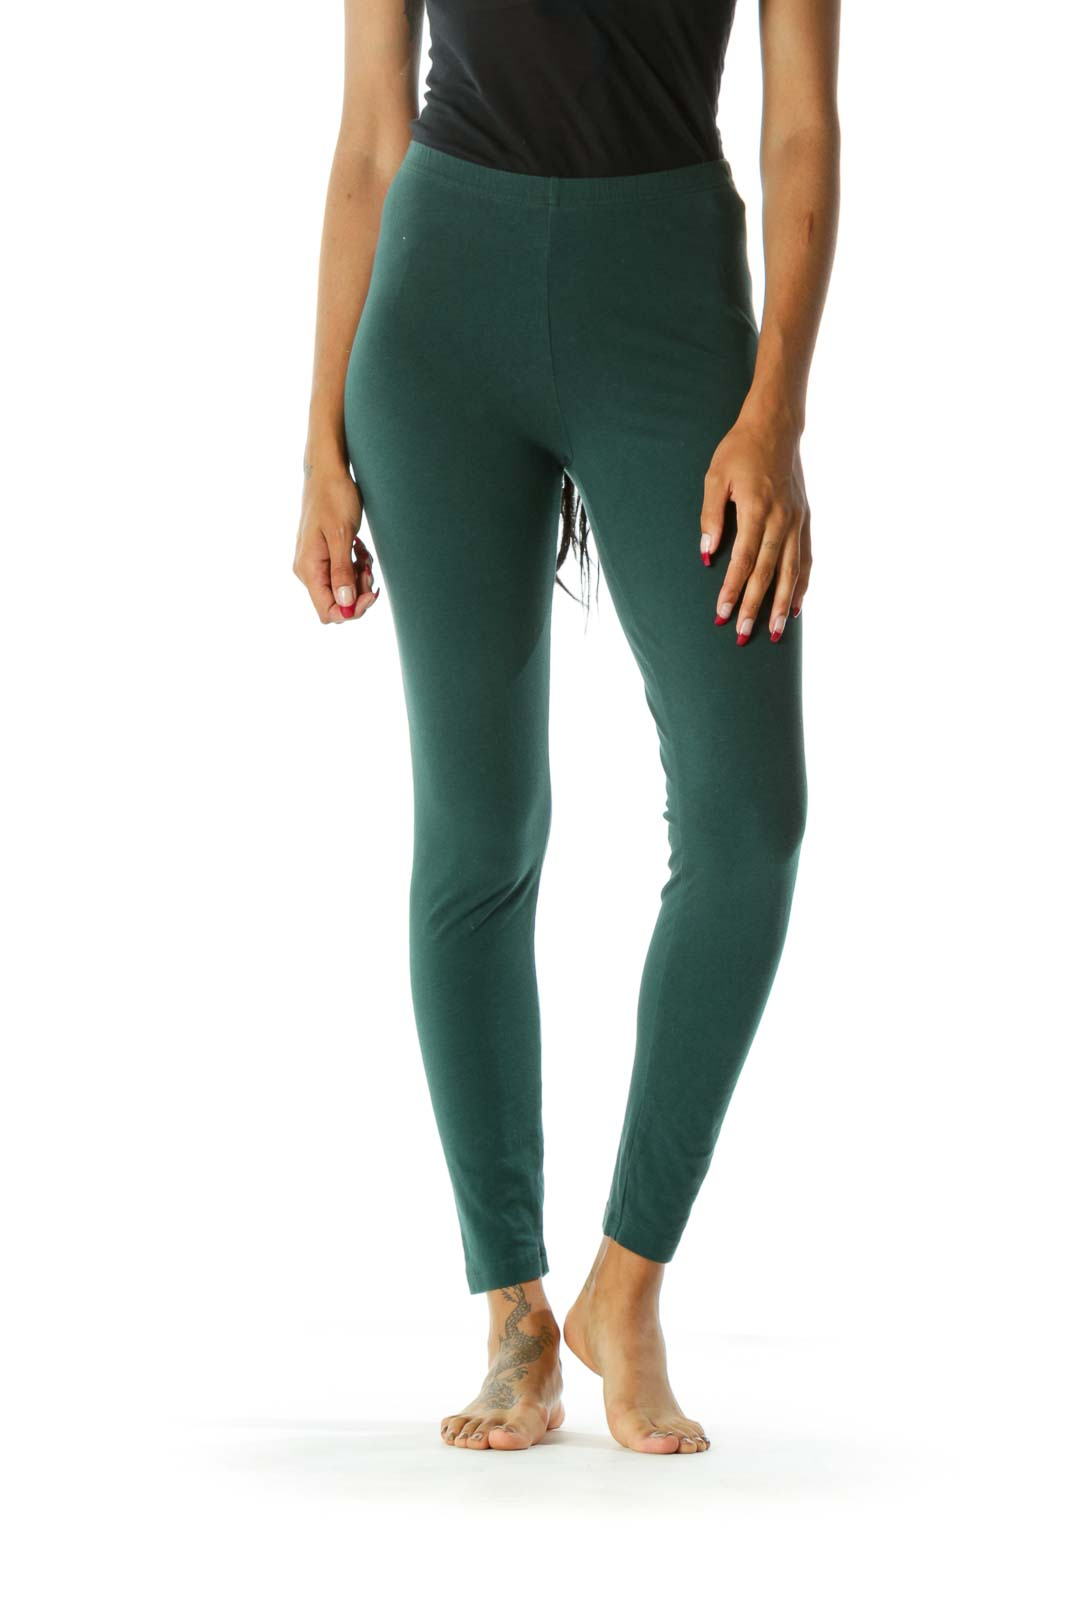 Green High-Waisted Skinny Leggings Front